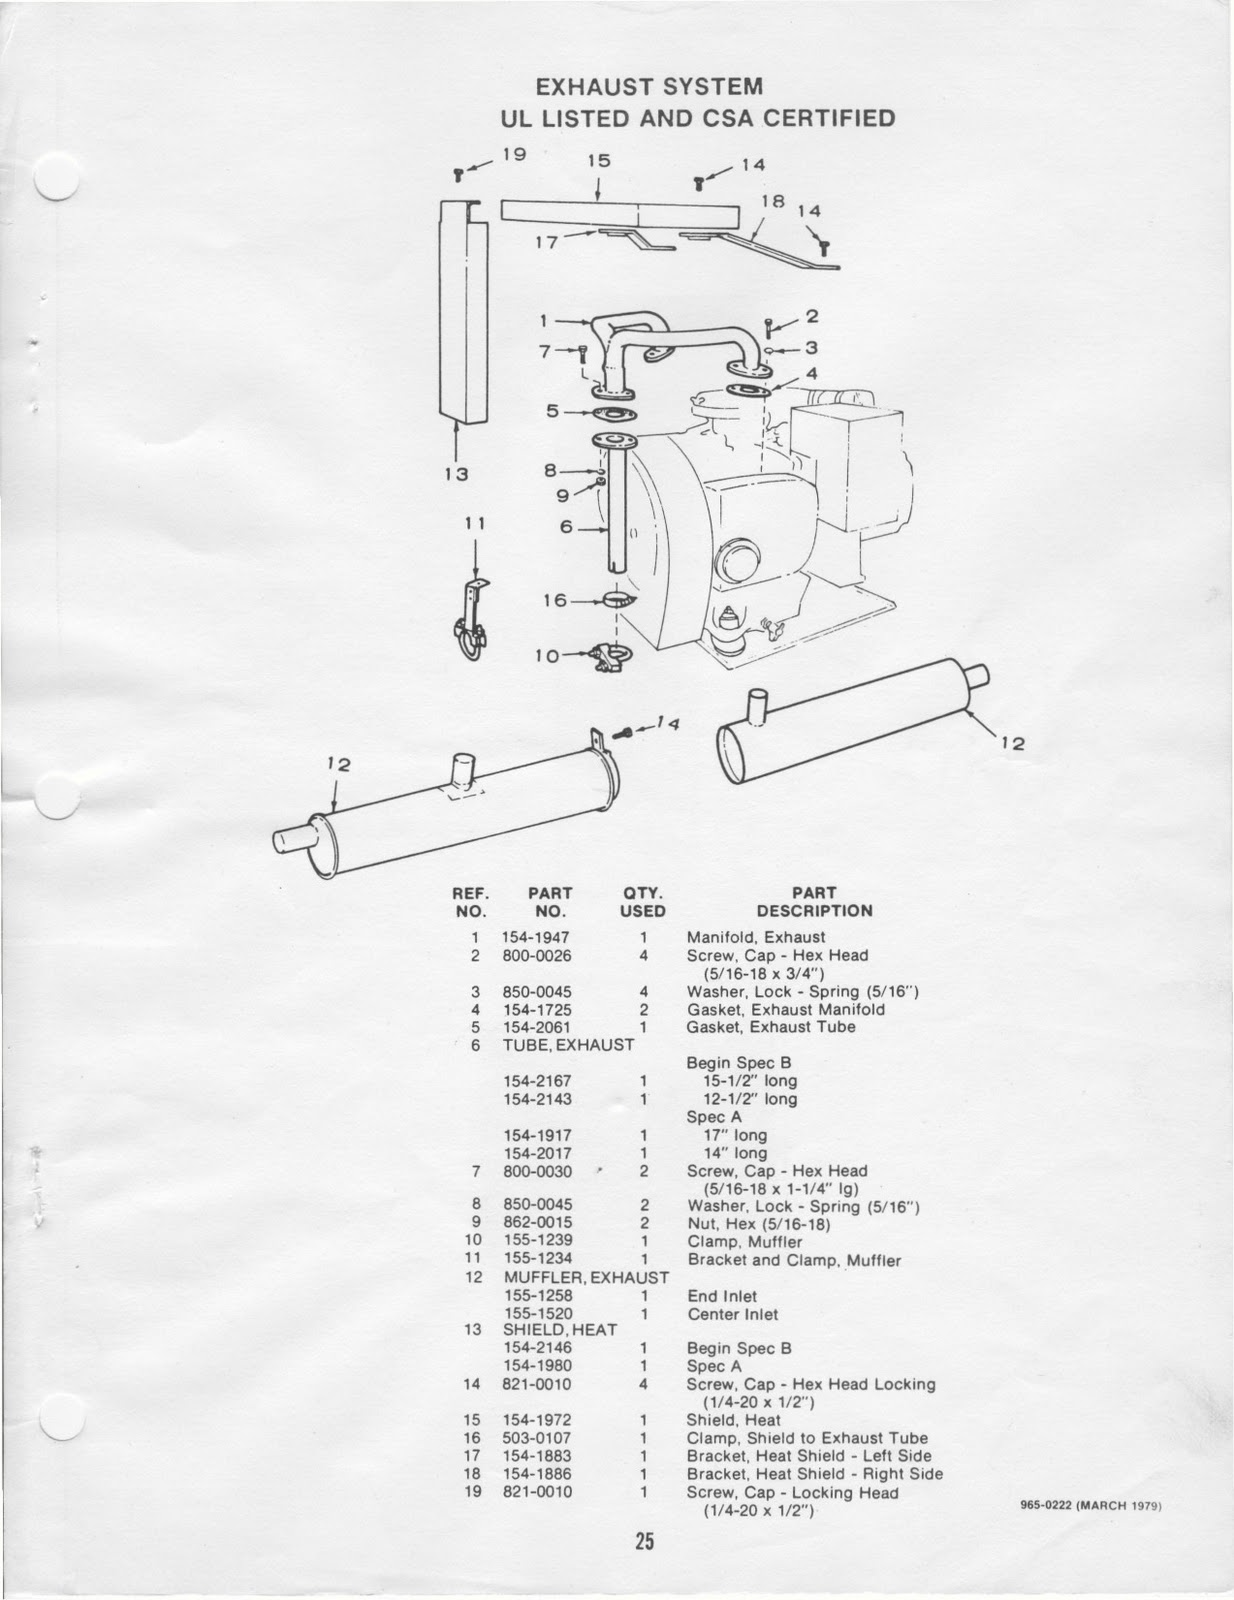 1996 Fleetwood Rv Parts | Wiring Diagram Database